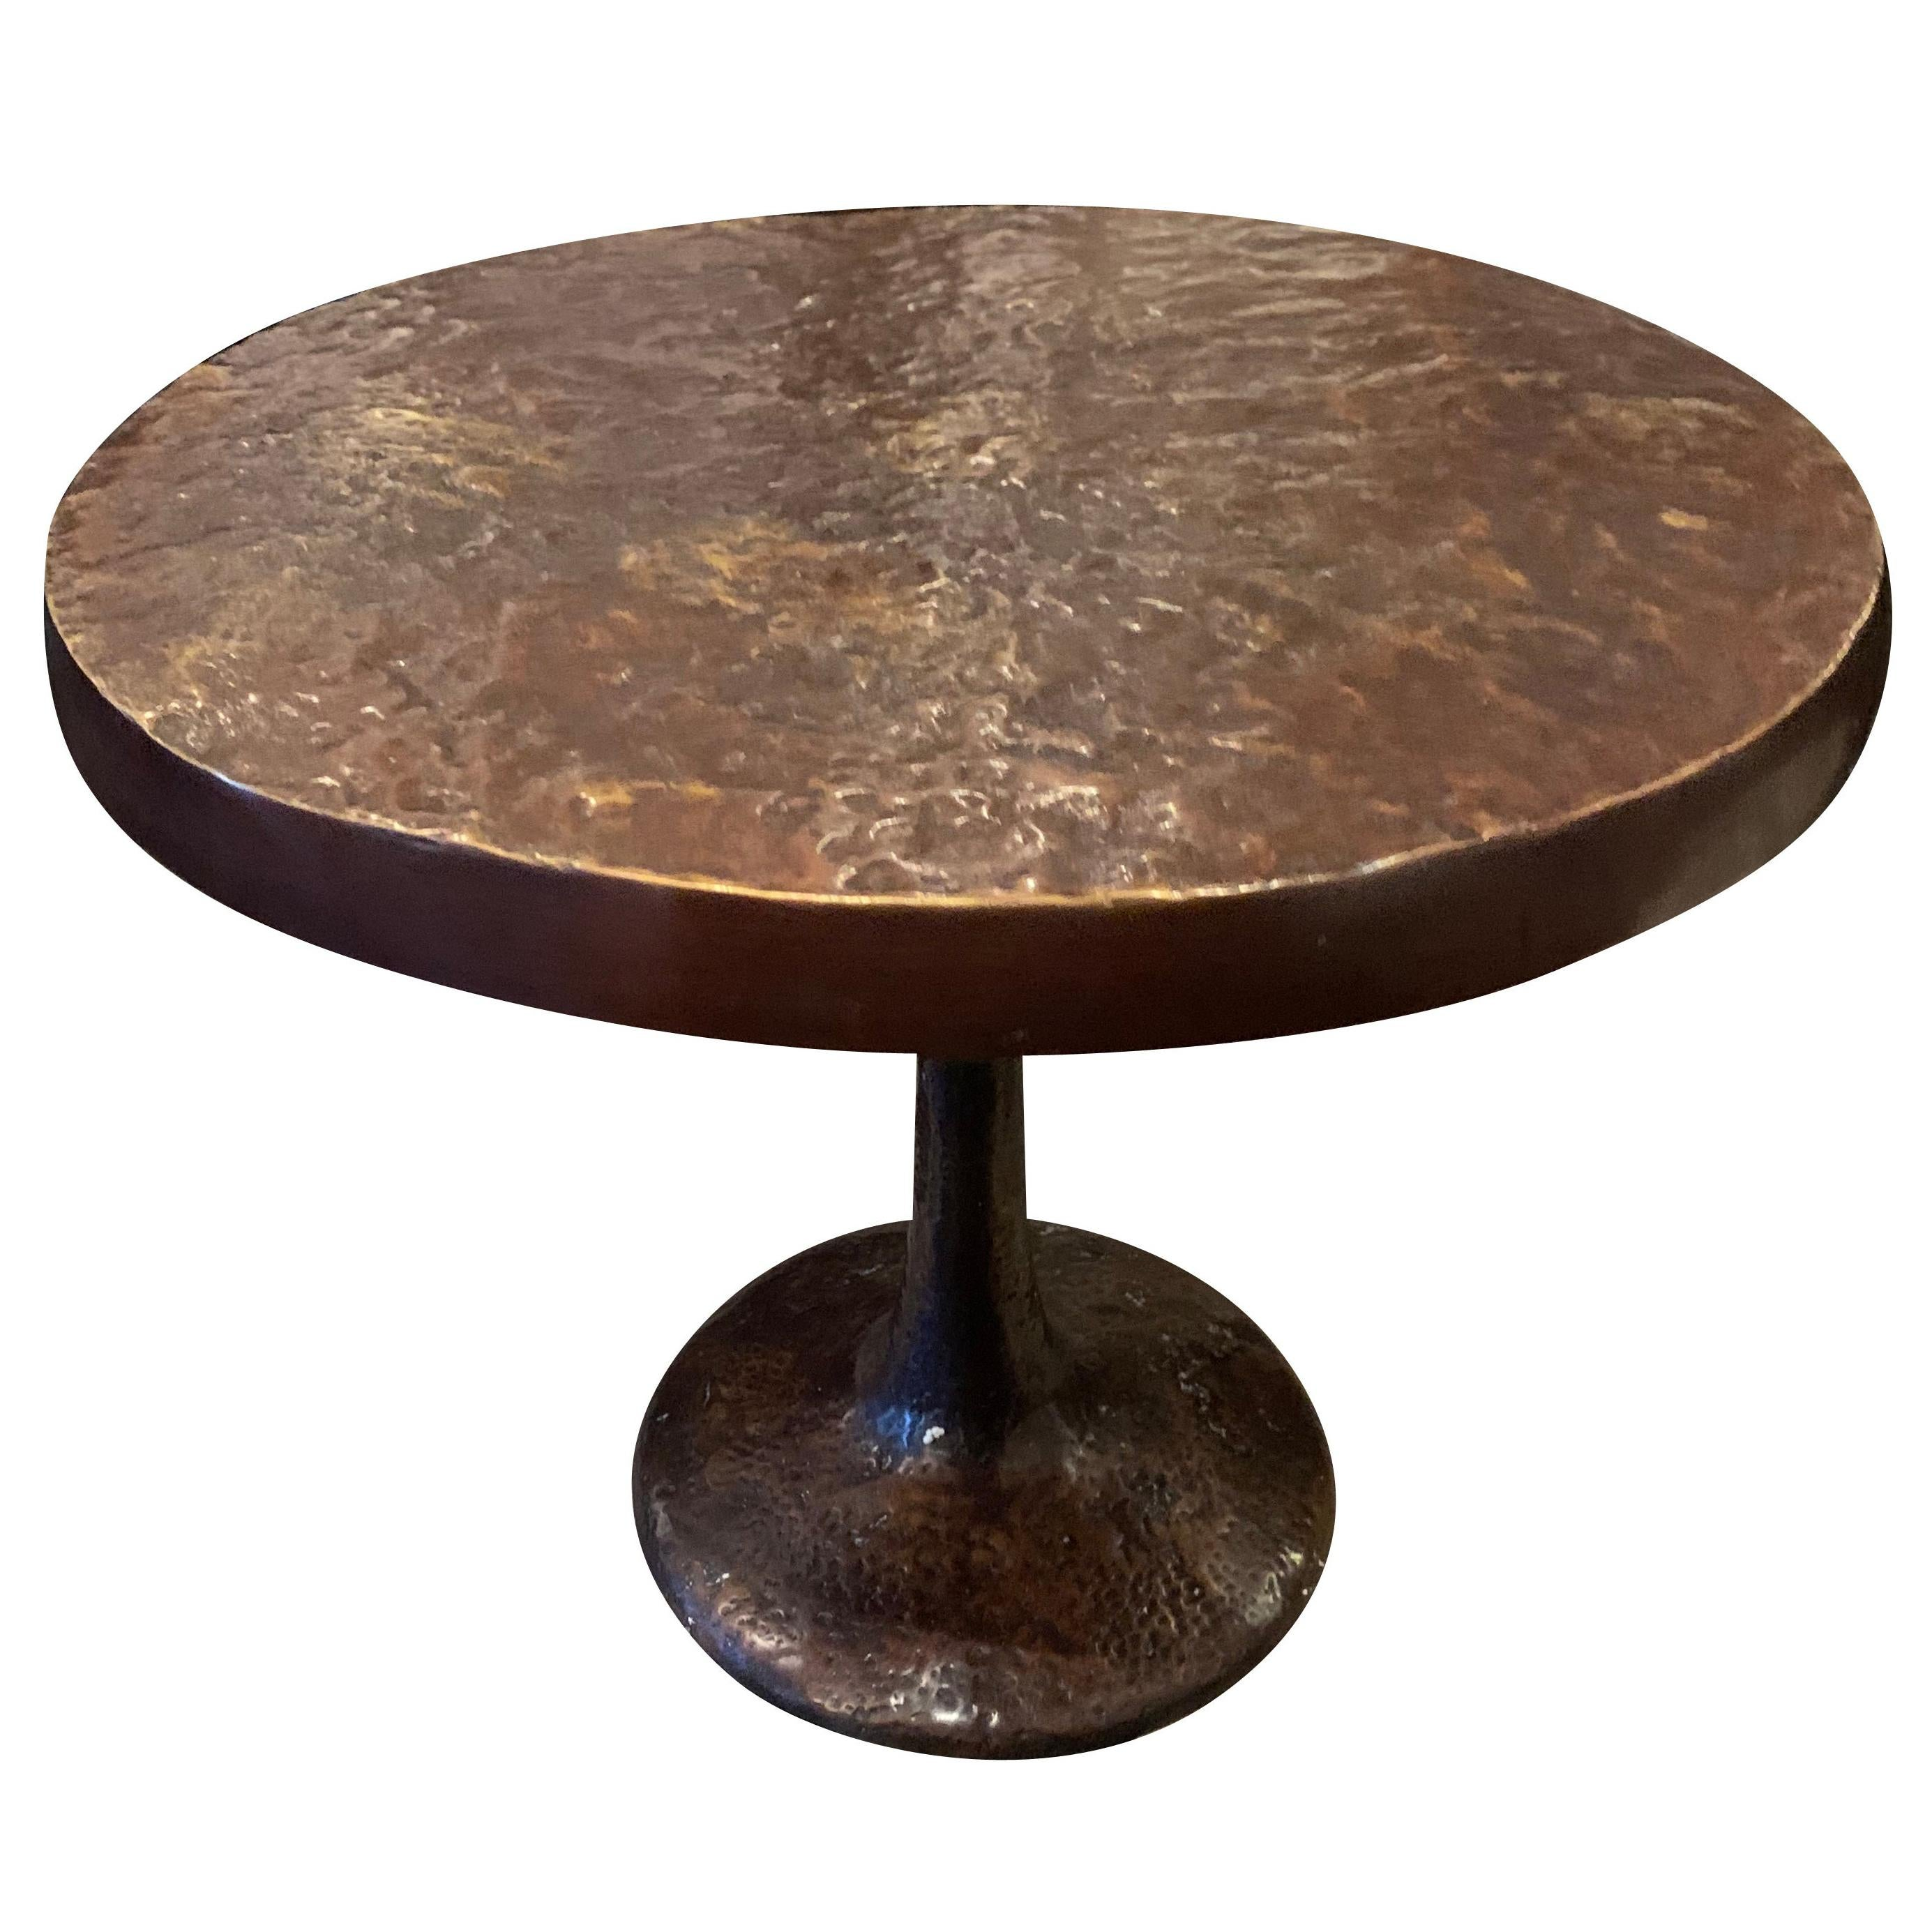 Hammered Bronze Side Table on Pedestal Base, Germany, Contemporary